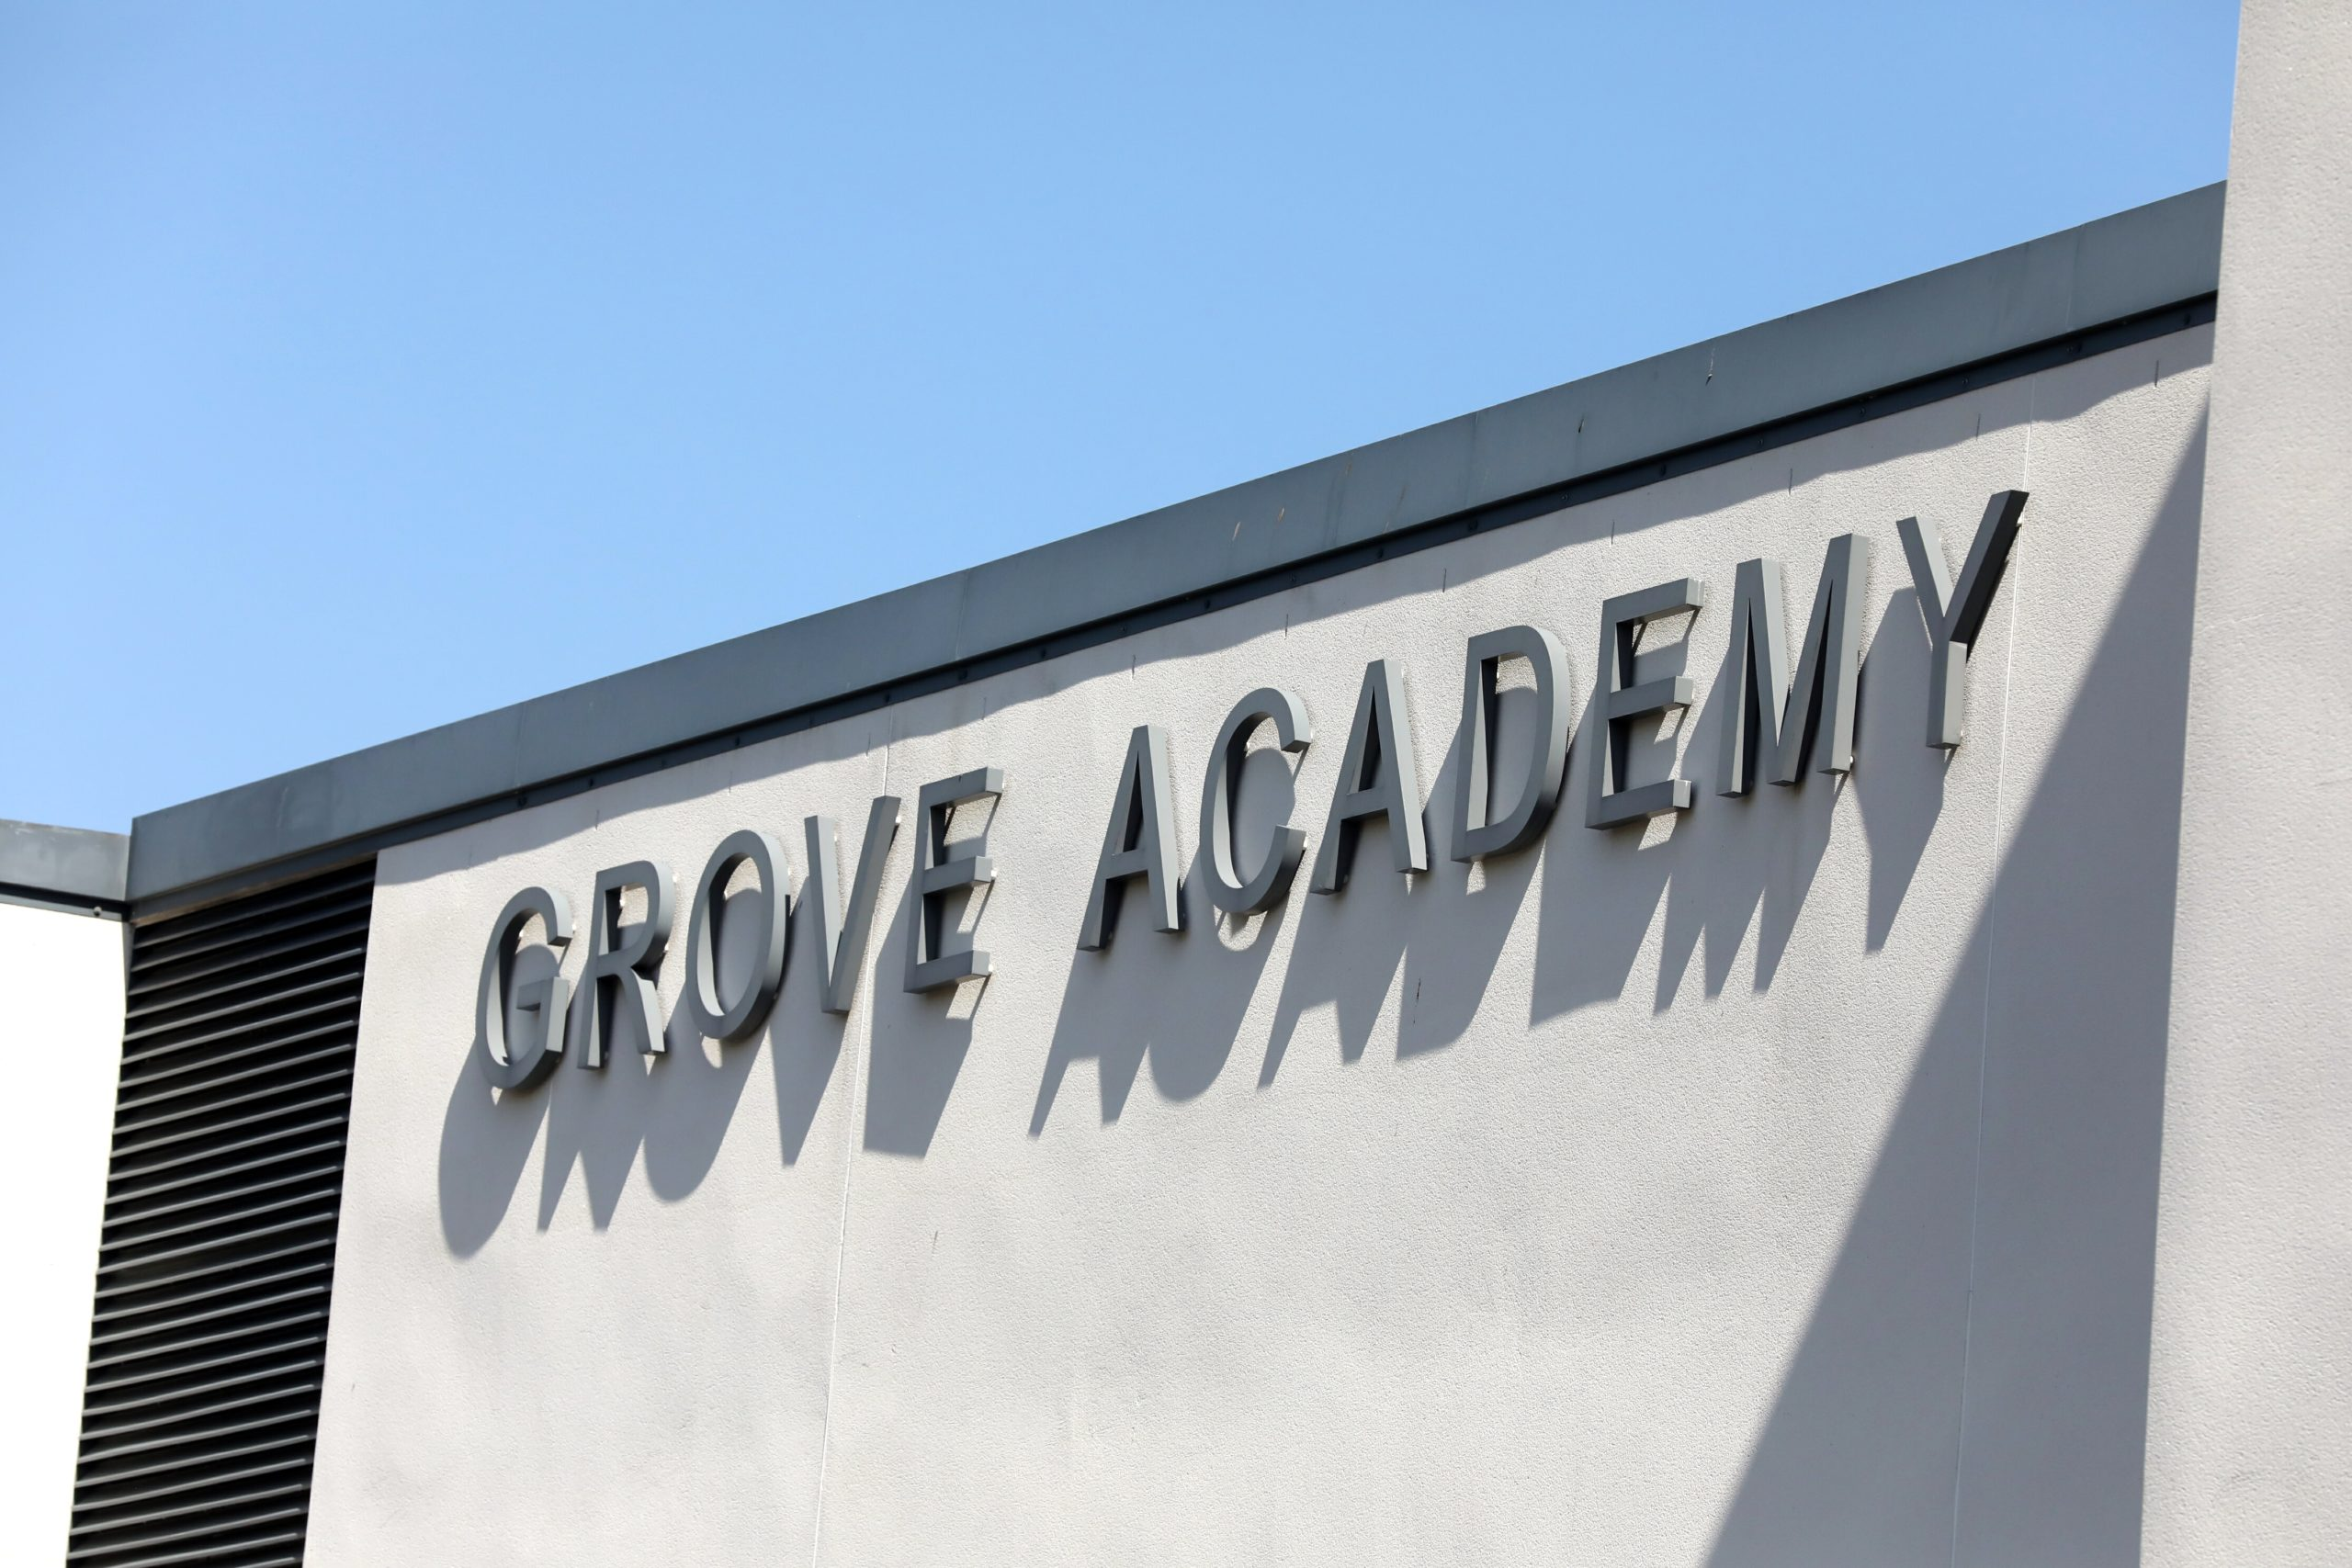 The opening of swimming and sports facilities at three schools, including Grove Academy, has been delayed.